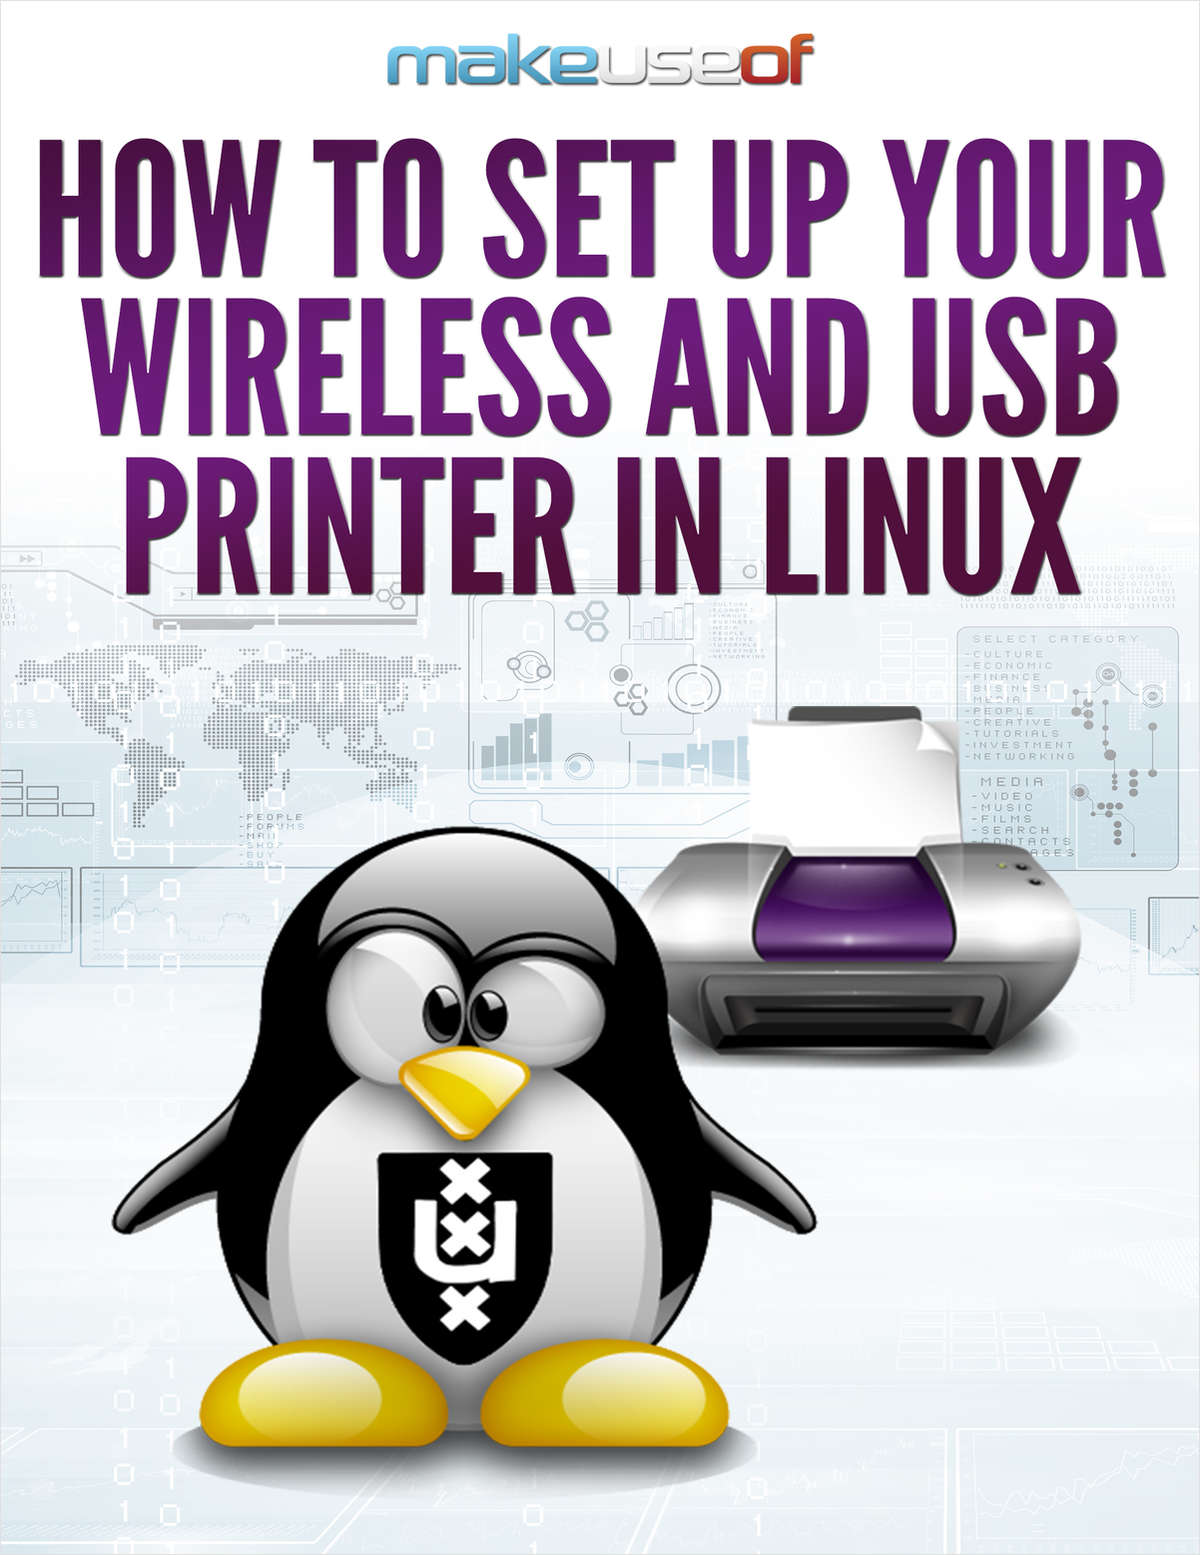 How to Set Up Your Wireless and USB Printer in Linux